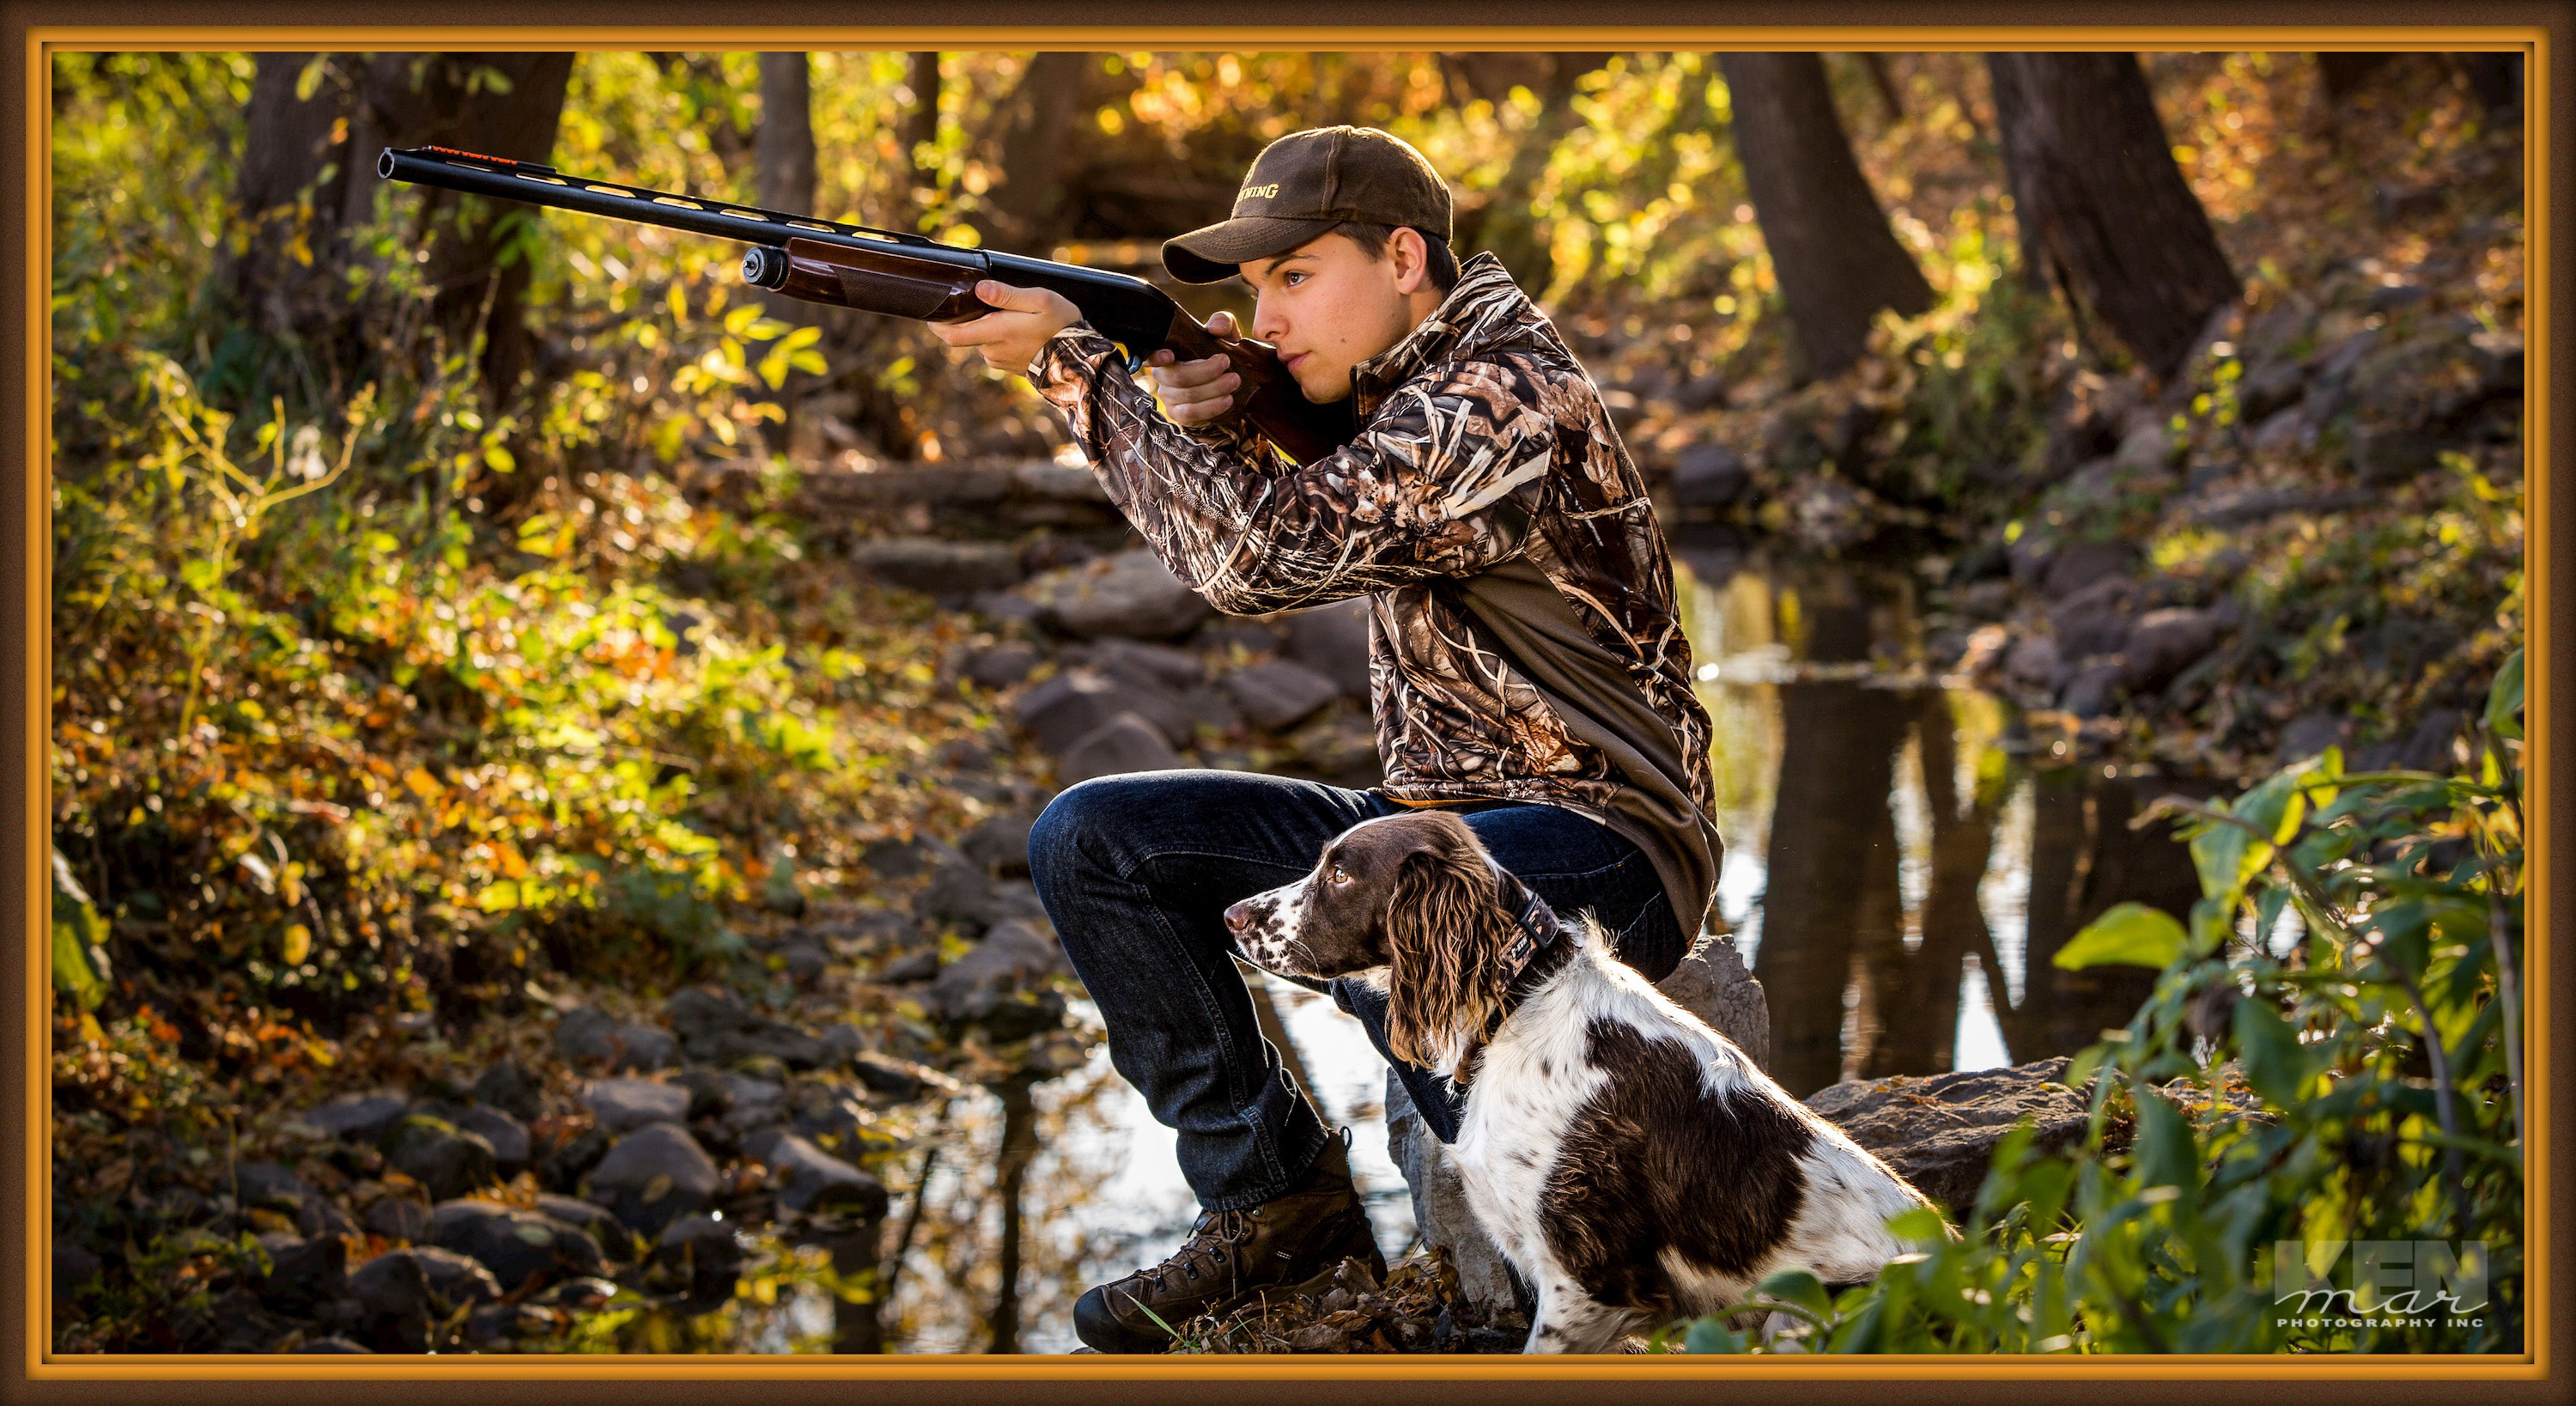 Young man posed outdoors by stream with hunting gun and dog